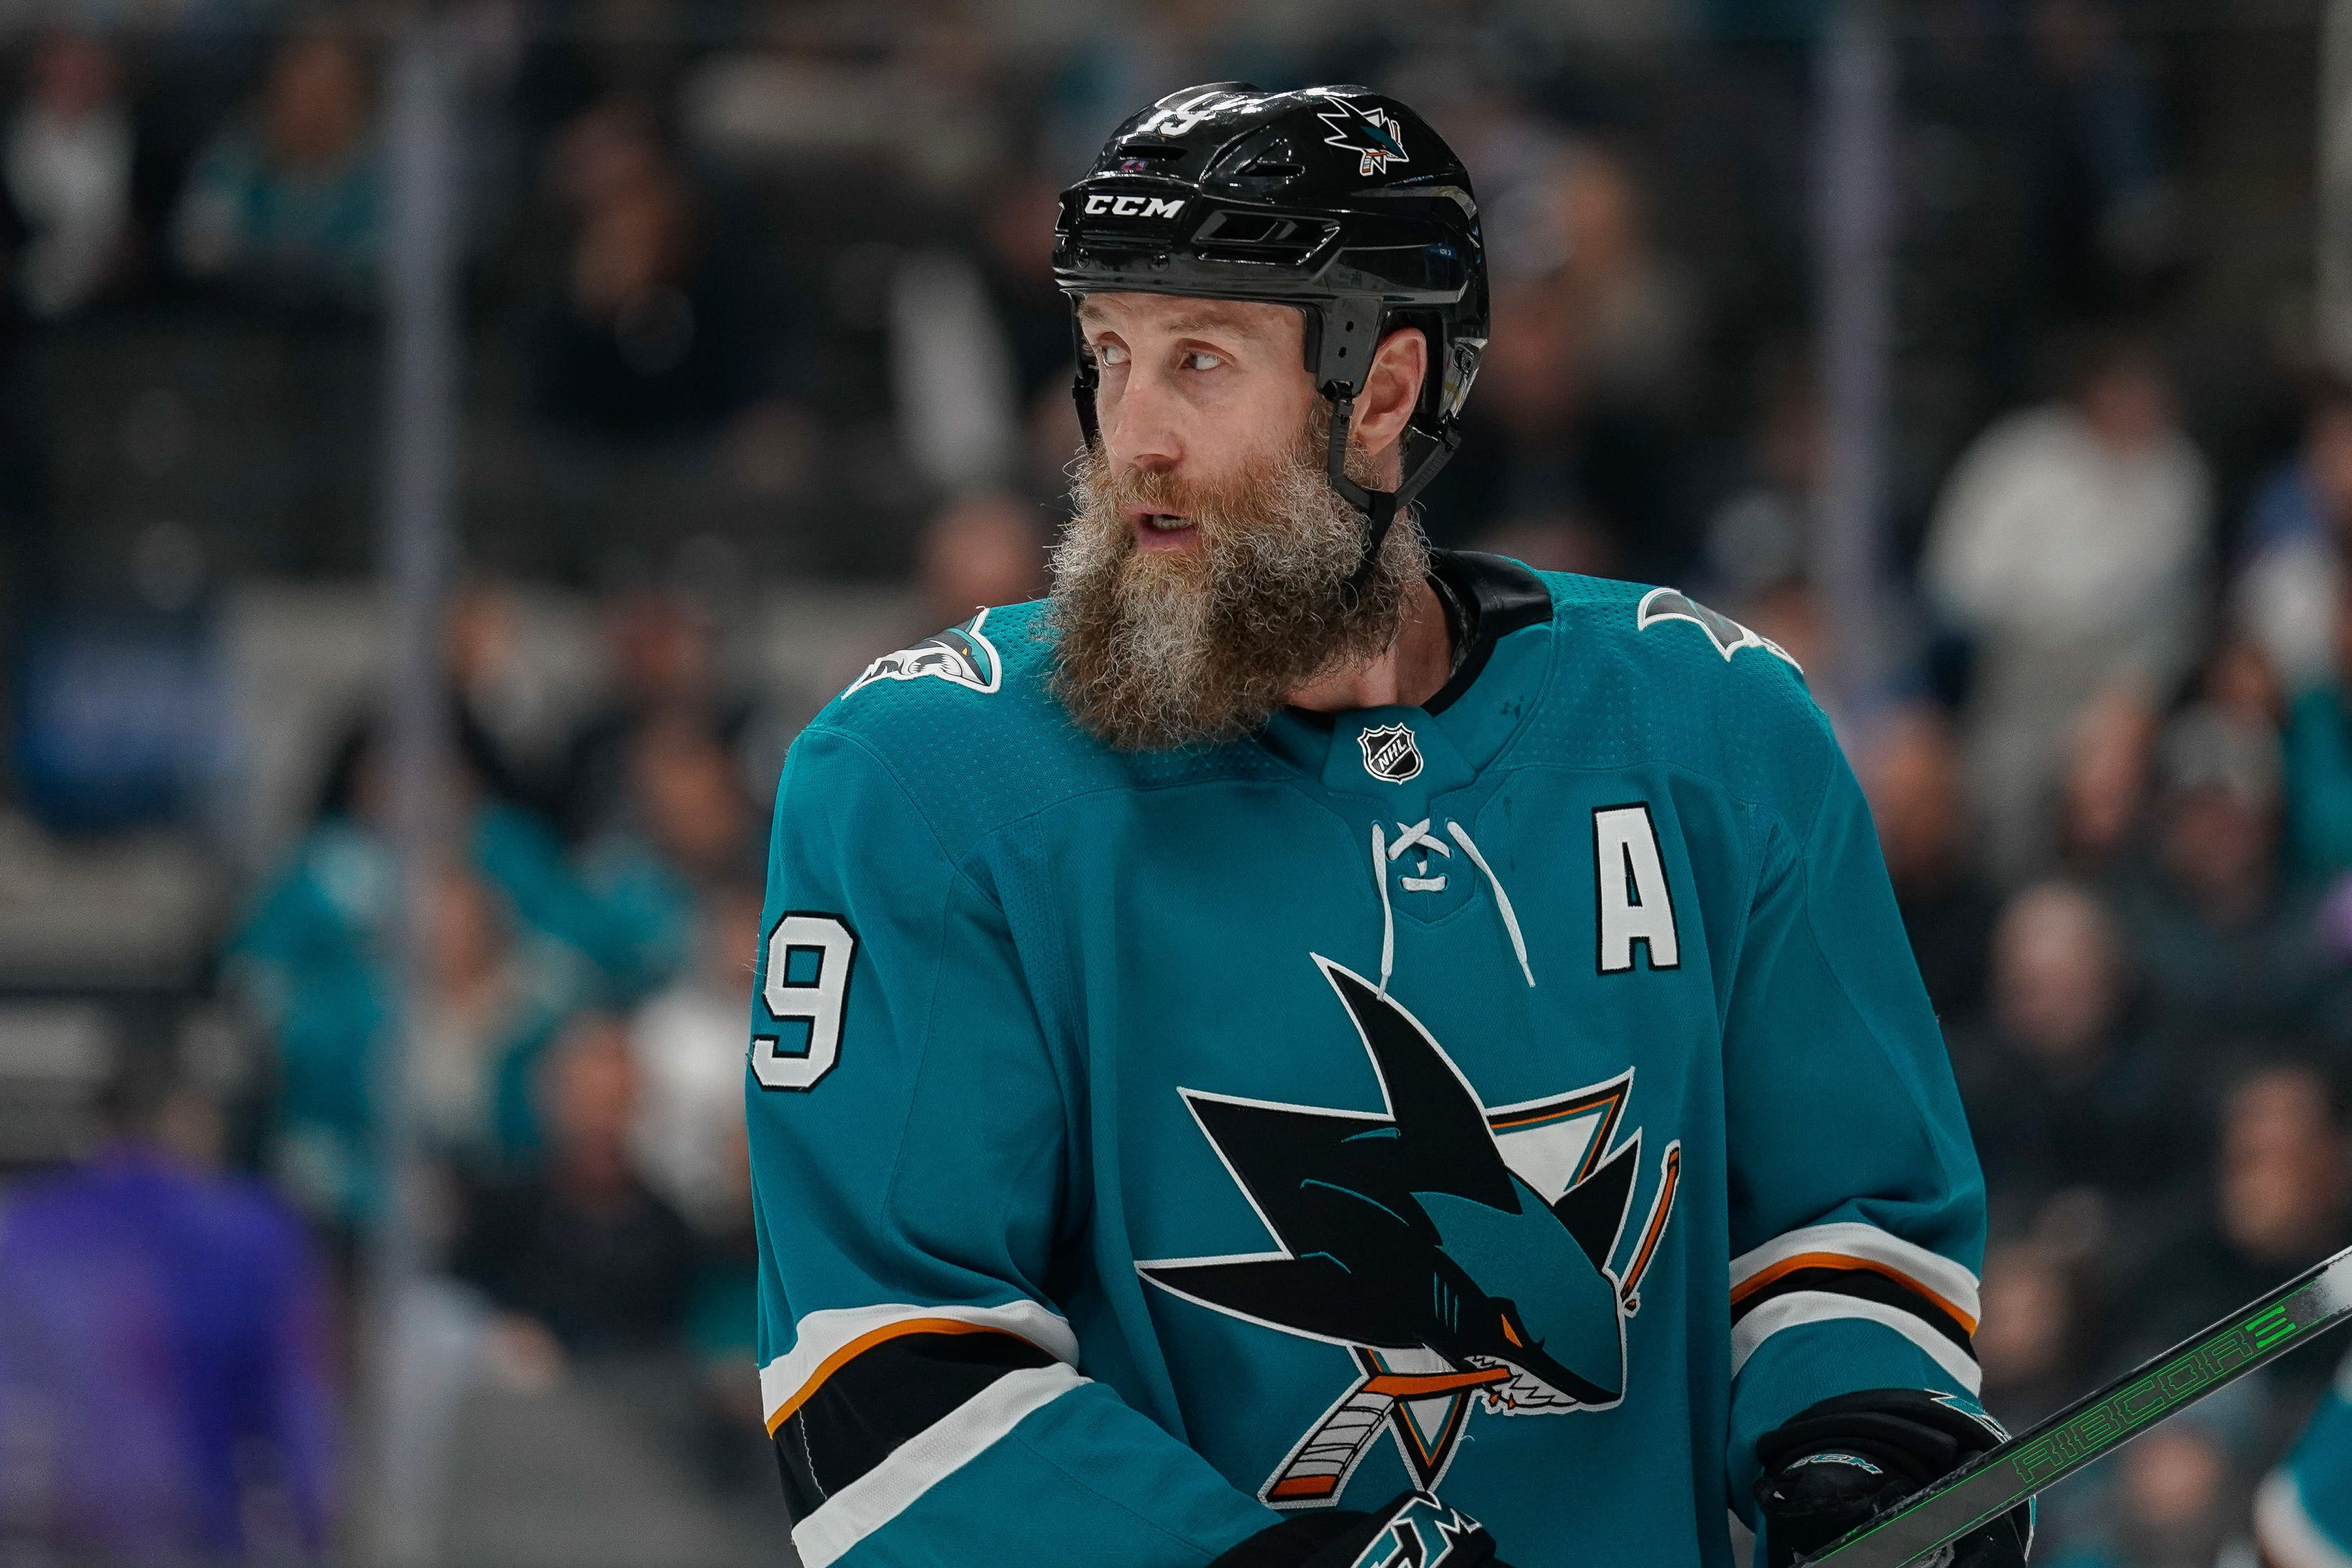 Joe Thornton joins Toronto Maple Leafs in bid to win first Stanley Cup